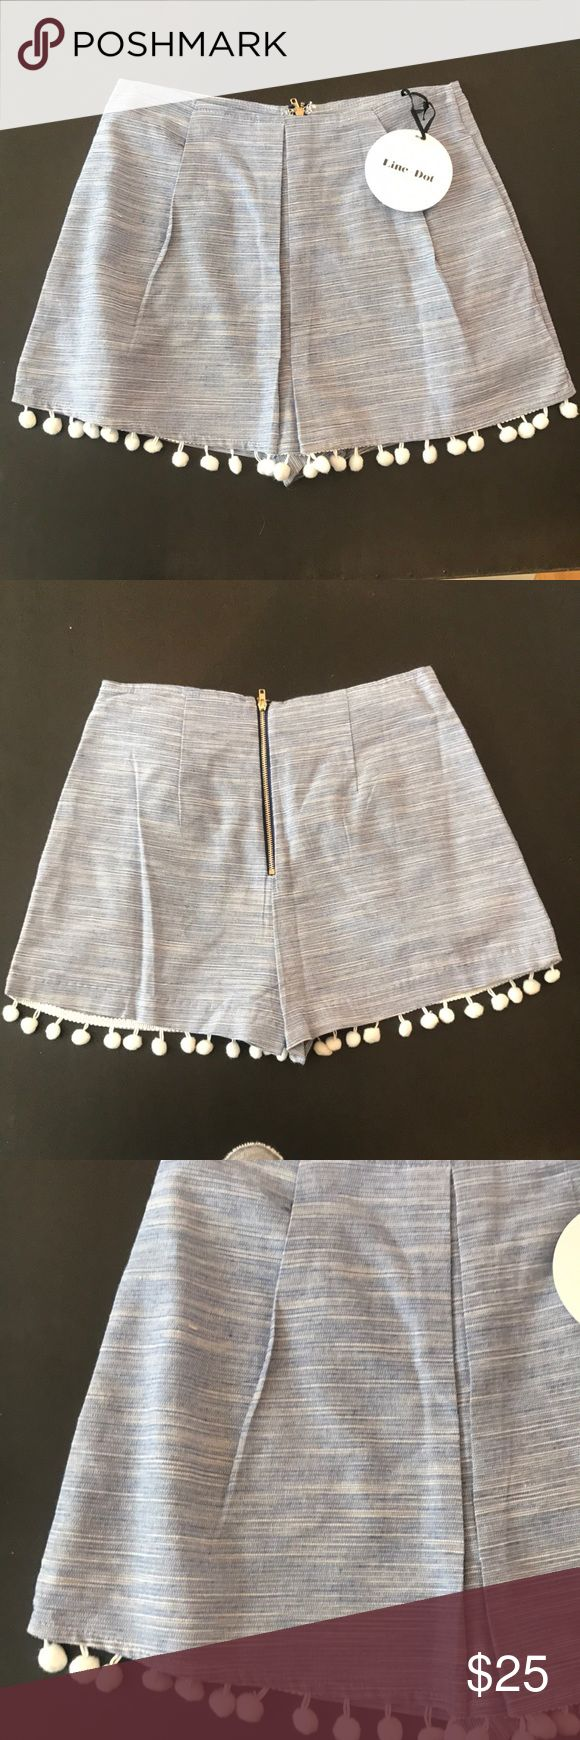 Line + Dot skort Blue multi high waisted pleated front skort with tassel detail. Skirt in the front with shorts underneath. Never been worn. Tags attached. Perfect condition. Line & Dot Shorts Skorts